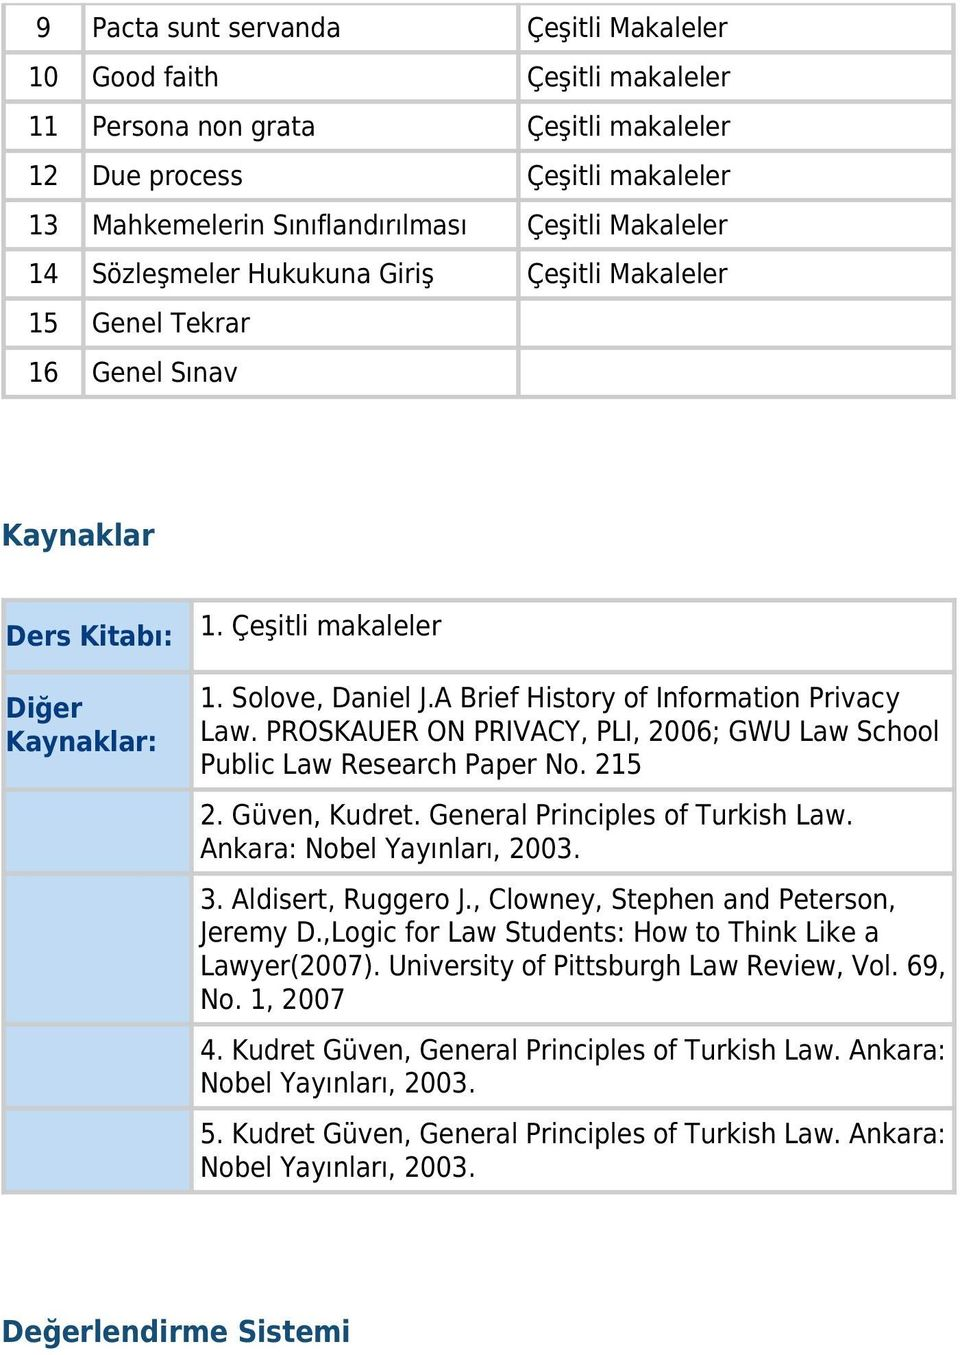 PROSKAUER ON PRIVACY, PLI, 2006; GWU Law School Public Law Research Paper No. 215 2. Güven, Kudret. General Principles of Turkish Law. Ankara: Nobel Yayınları, 2003. 3. Aldisert, Ruggero J.